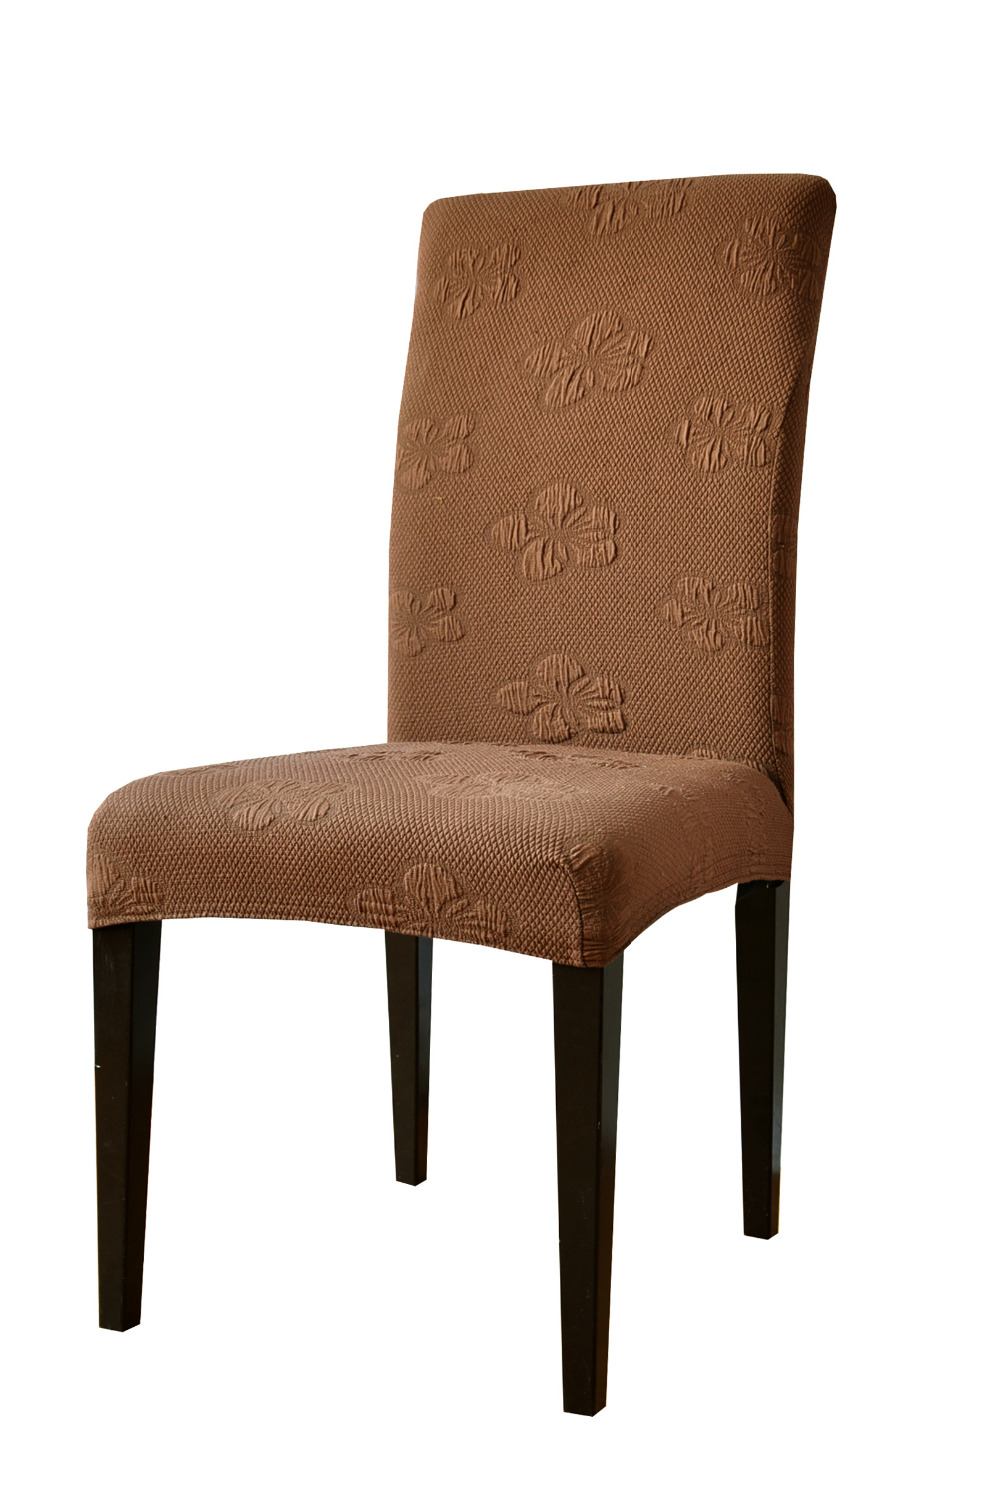 Learn How To Re Cover A Dining Room Chair In A Fancy New